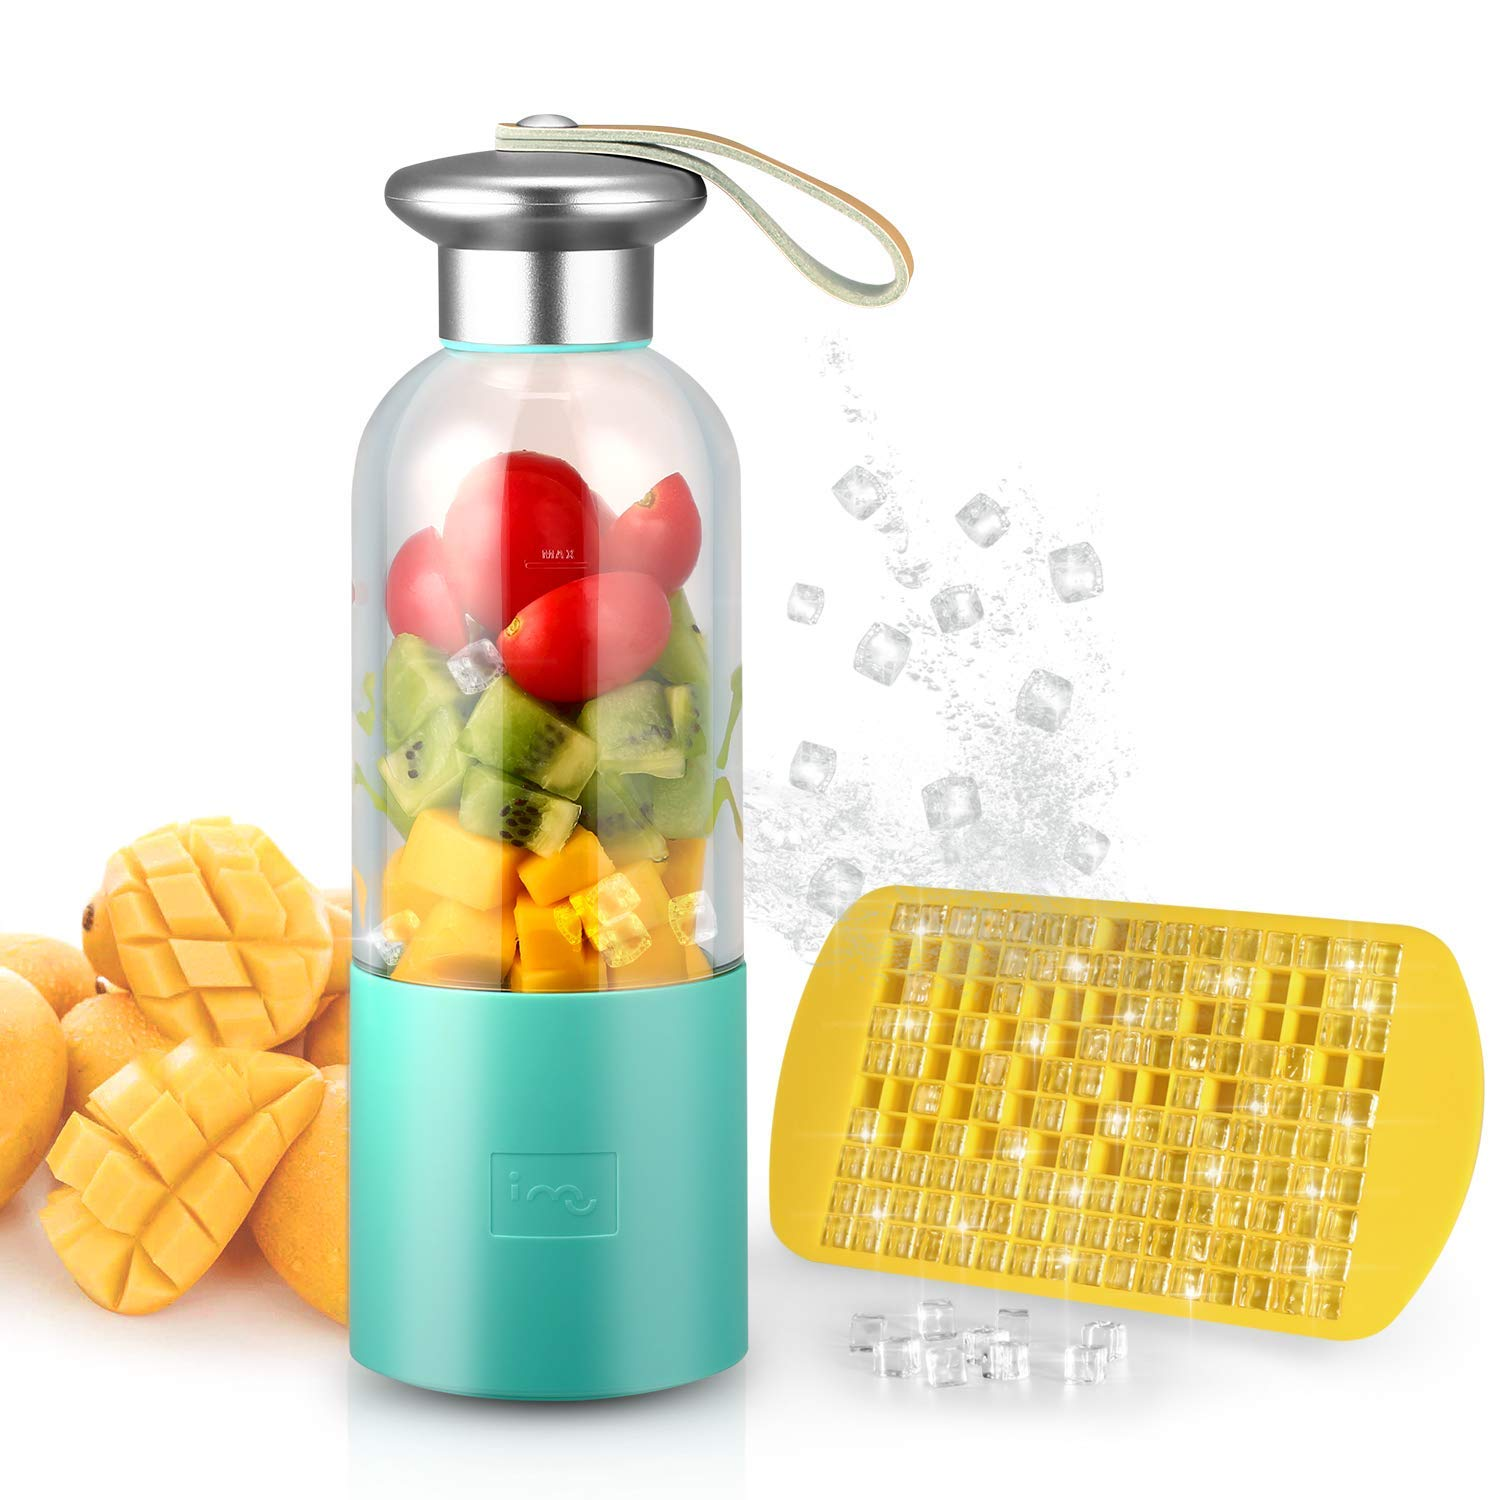 Portable Smoothie Blender Small Blender Usb Rechargeable Single Served For Shakes And Smoothies, Fruit Mixer Machine For Ice FPortable Smoothie Blender Small Blender Usb Rechargeable Single Served For Shakes And Smoothies, Fruit Mixer Machine For Ice F